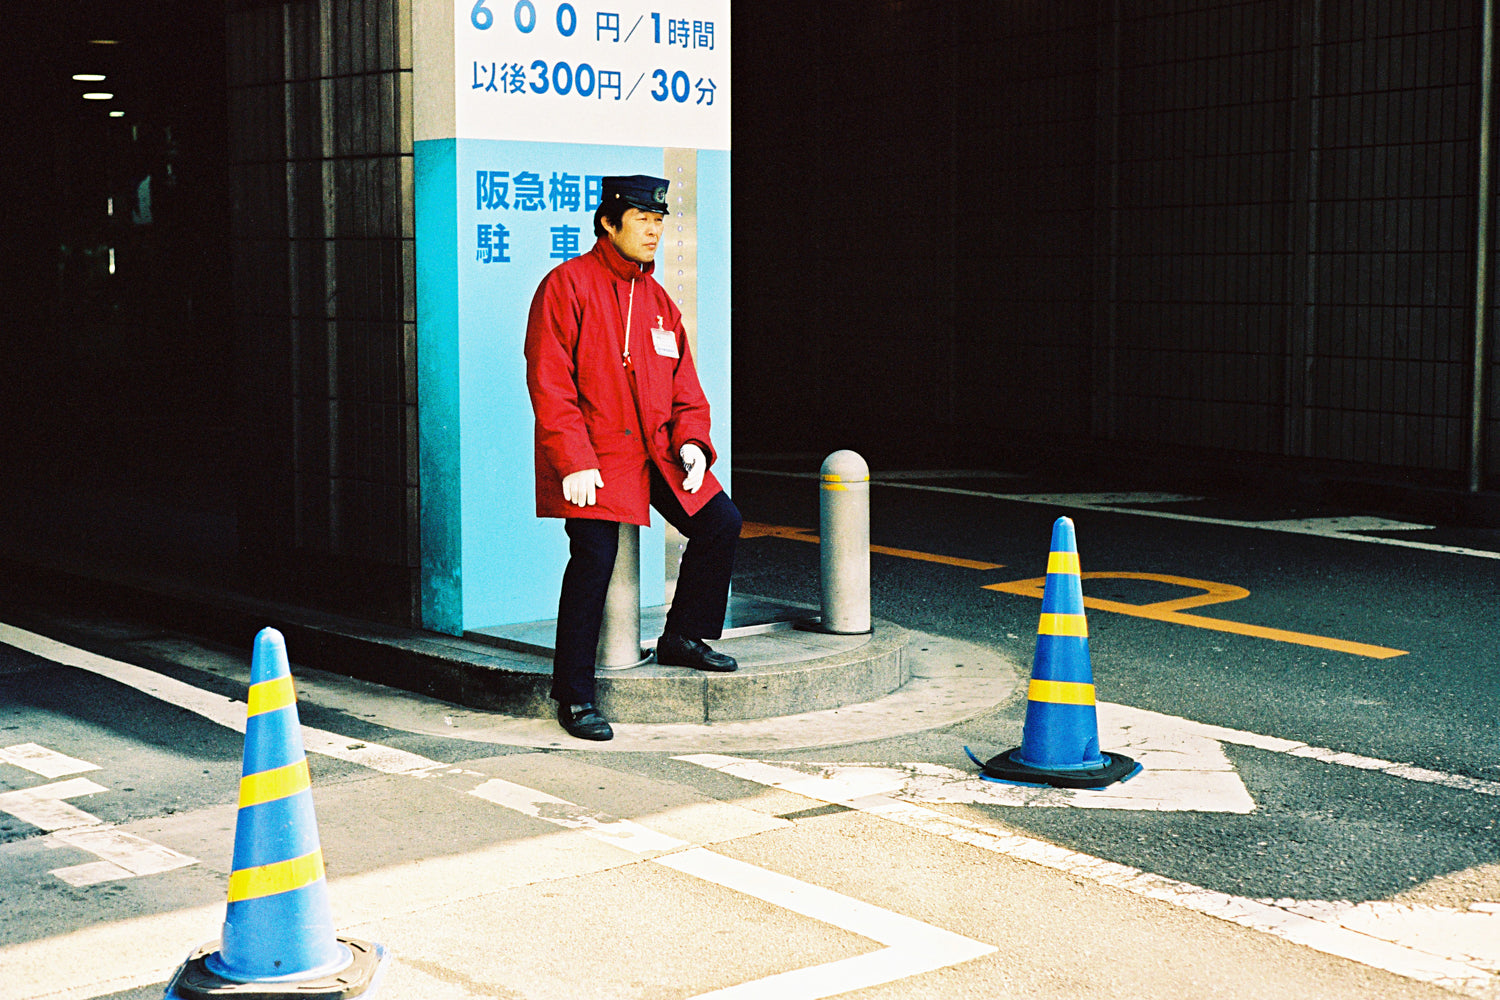 A parking attendant sitting outside a Japanese carpark entrance. He wears a red uniform with a black cap. Artwork Prints, wall ar,t Japan, Osaka, Photographic prints,, Framed artwork,  Posters  Photography Photography for sale, Film photography, Vintage photo style,  Interior design, Film photography, Pictures framed, artwork, travel photography, 35mm fil